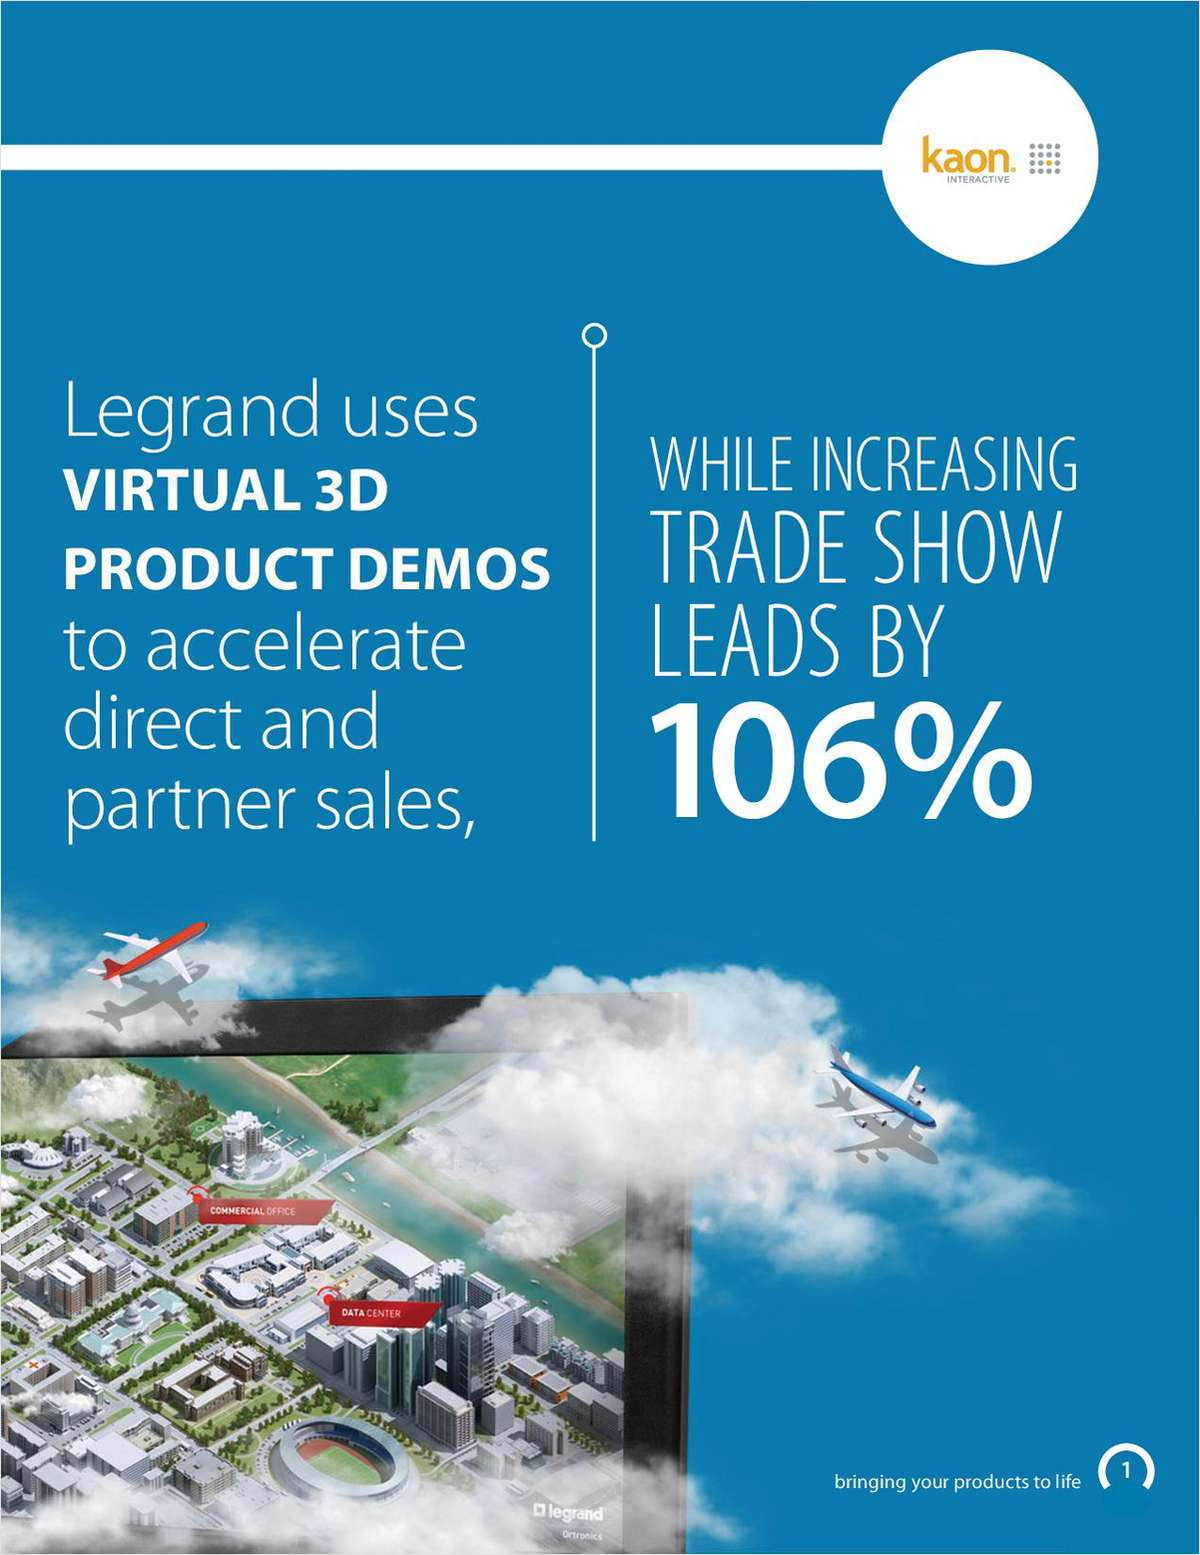 Legrand Uses Virtual 3D Product Demos to Accelerate Sales, Increasing TRADESHOW LEADS by 106%